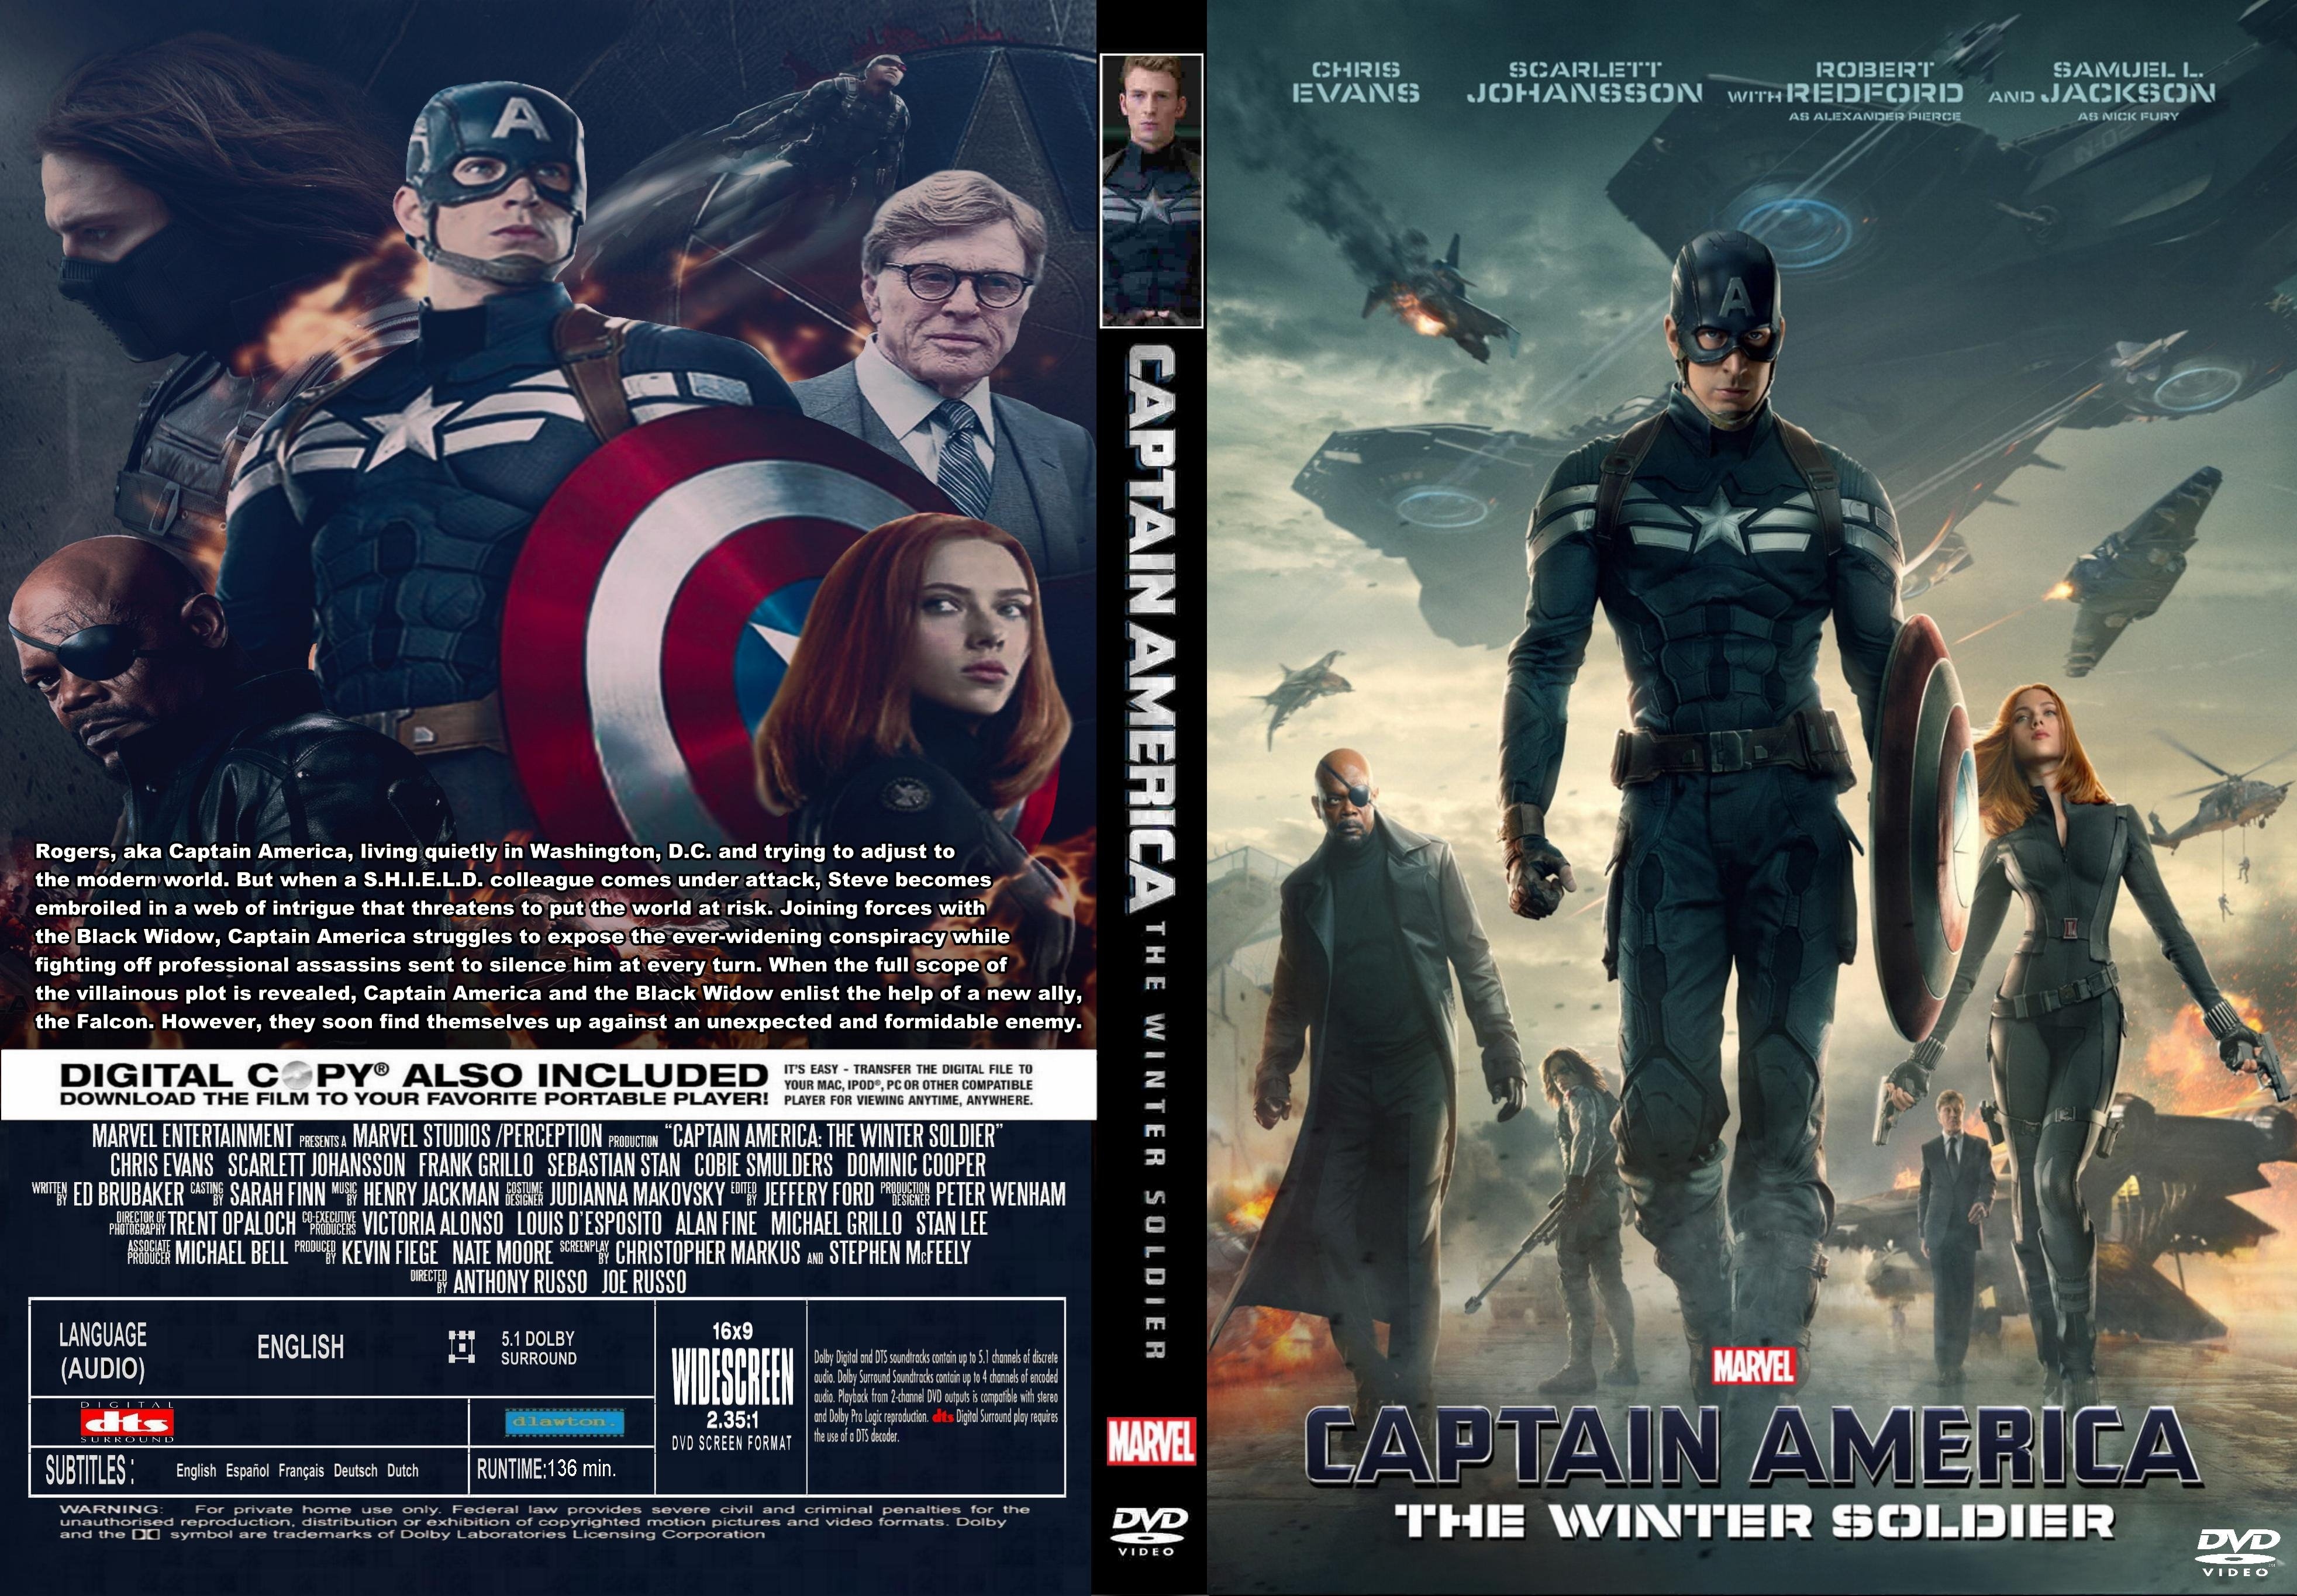 Movies for the resistance: captain america — the winter soldier.